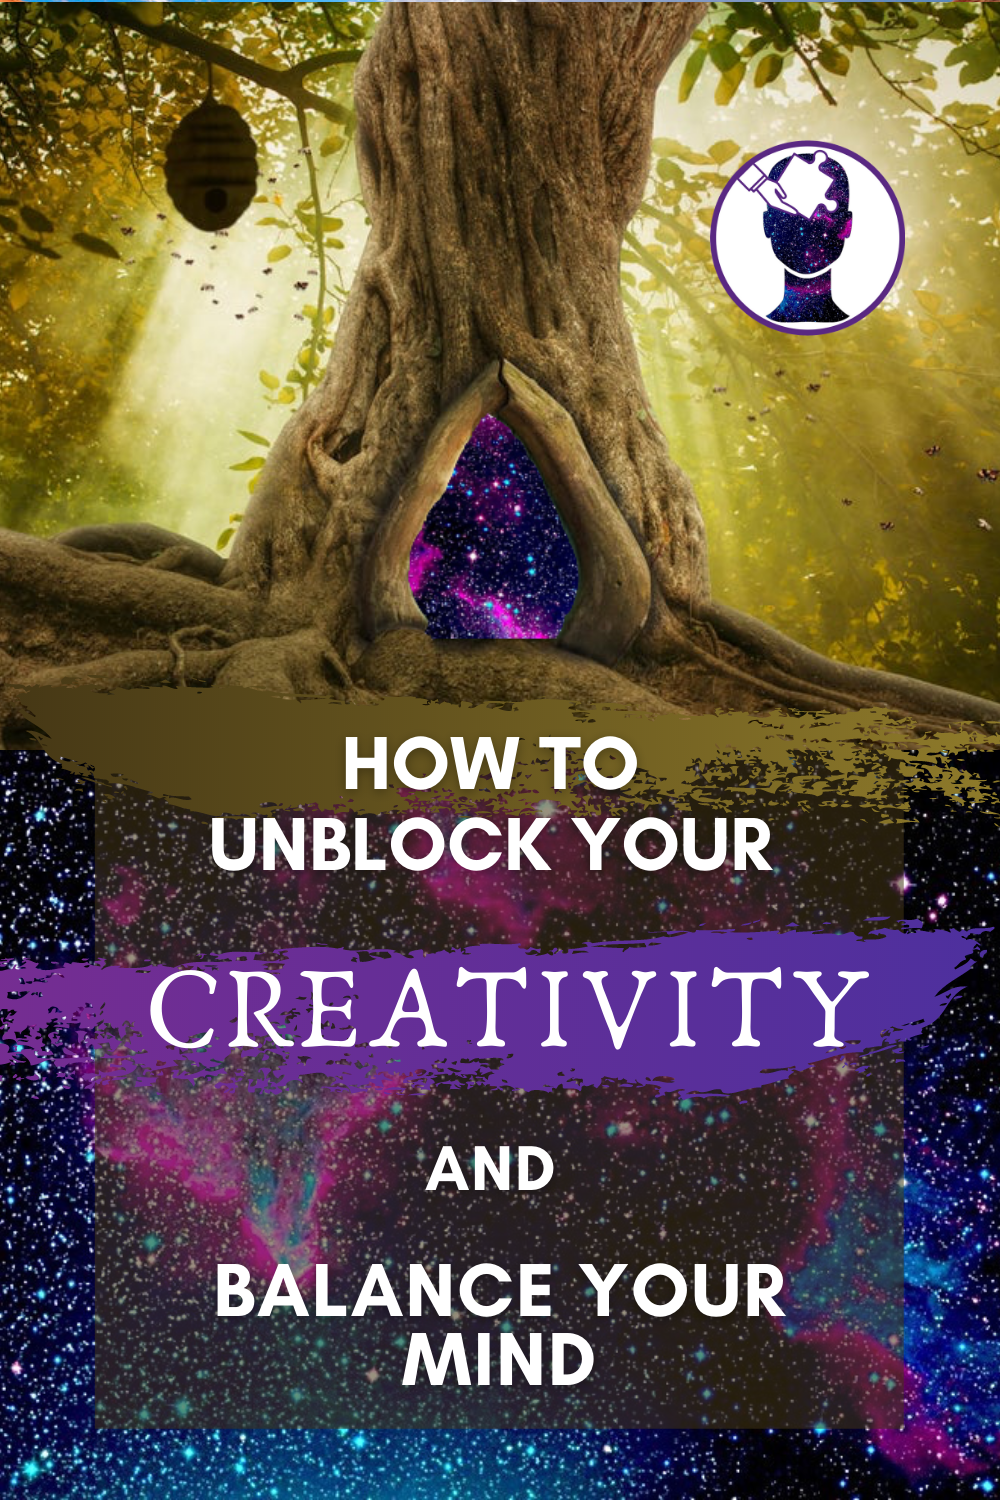 Learning how to unblock your creativity can help balance your mind and develop positive thinking for your overall wellbeing. Creativity is the ability to see an abundance of variations. In this guide, Natalya teaches you how to raise your vibration, break your limits and let your creativity flow. Learn to know yourself and unblock your creativity NOW so you can create your reality and live your dream! Let's take you back to magic!